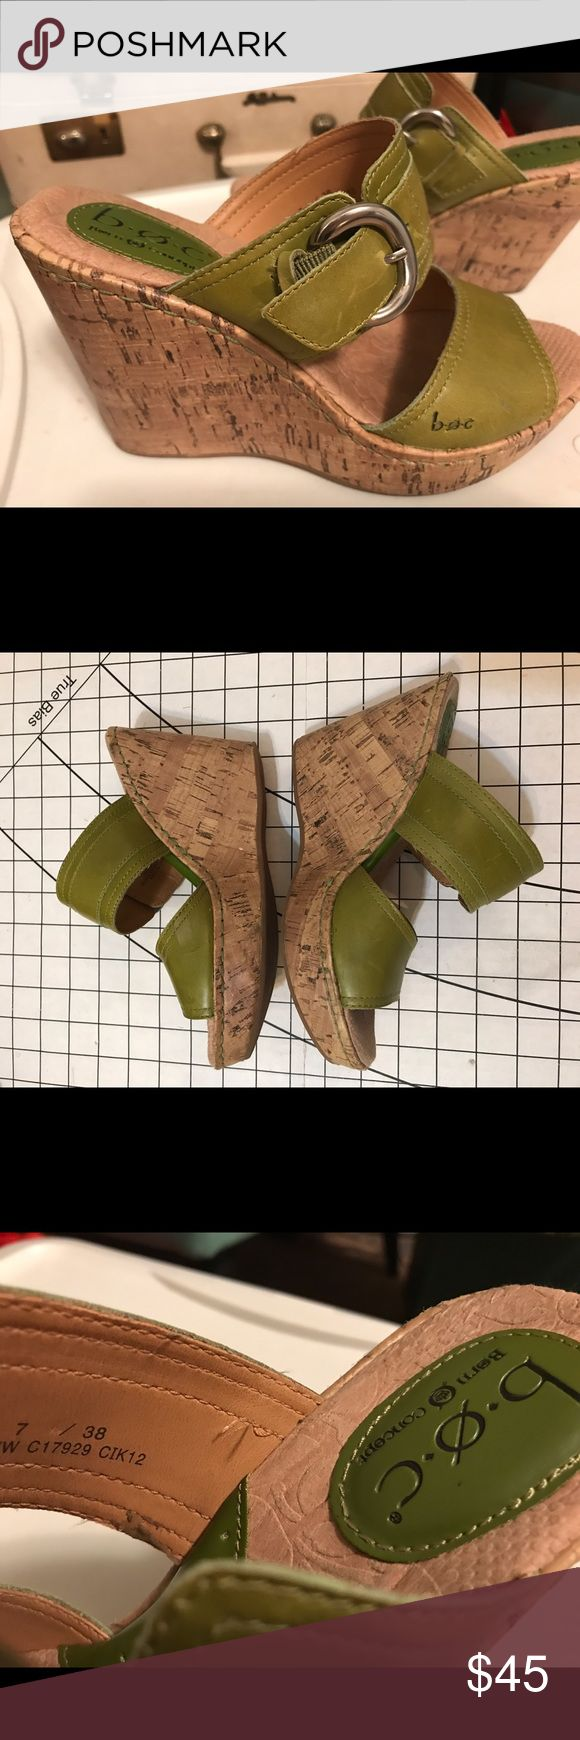 "Hot!! Born BOC 4"" wedge sandal 38 / 7 in KIWI 🥝 Born B.O.C. Platform wedge sandals in kiwi green leather 🥝. Size: EU 38/ US 7. Cork platform is 1"" + 3"" heel. Wide adjustable buckle straps have elastic goring. super cute & comfy!  Very good preowned condition. No chips in cork, very light wear on soles, vey minor blemishes on leather ( see photos). First photo is accurate color! Thanks for looking! Born Shoes Wedges"